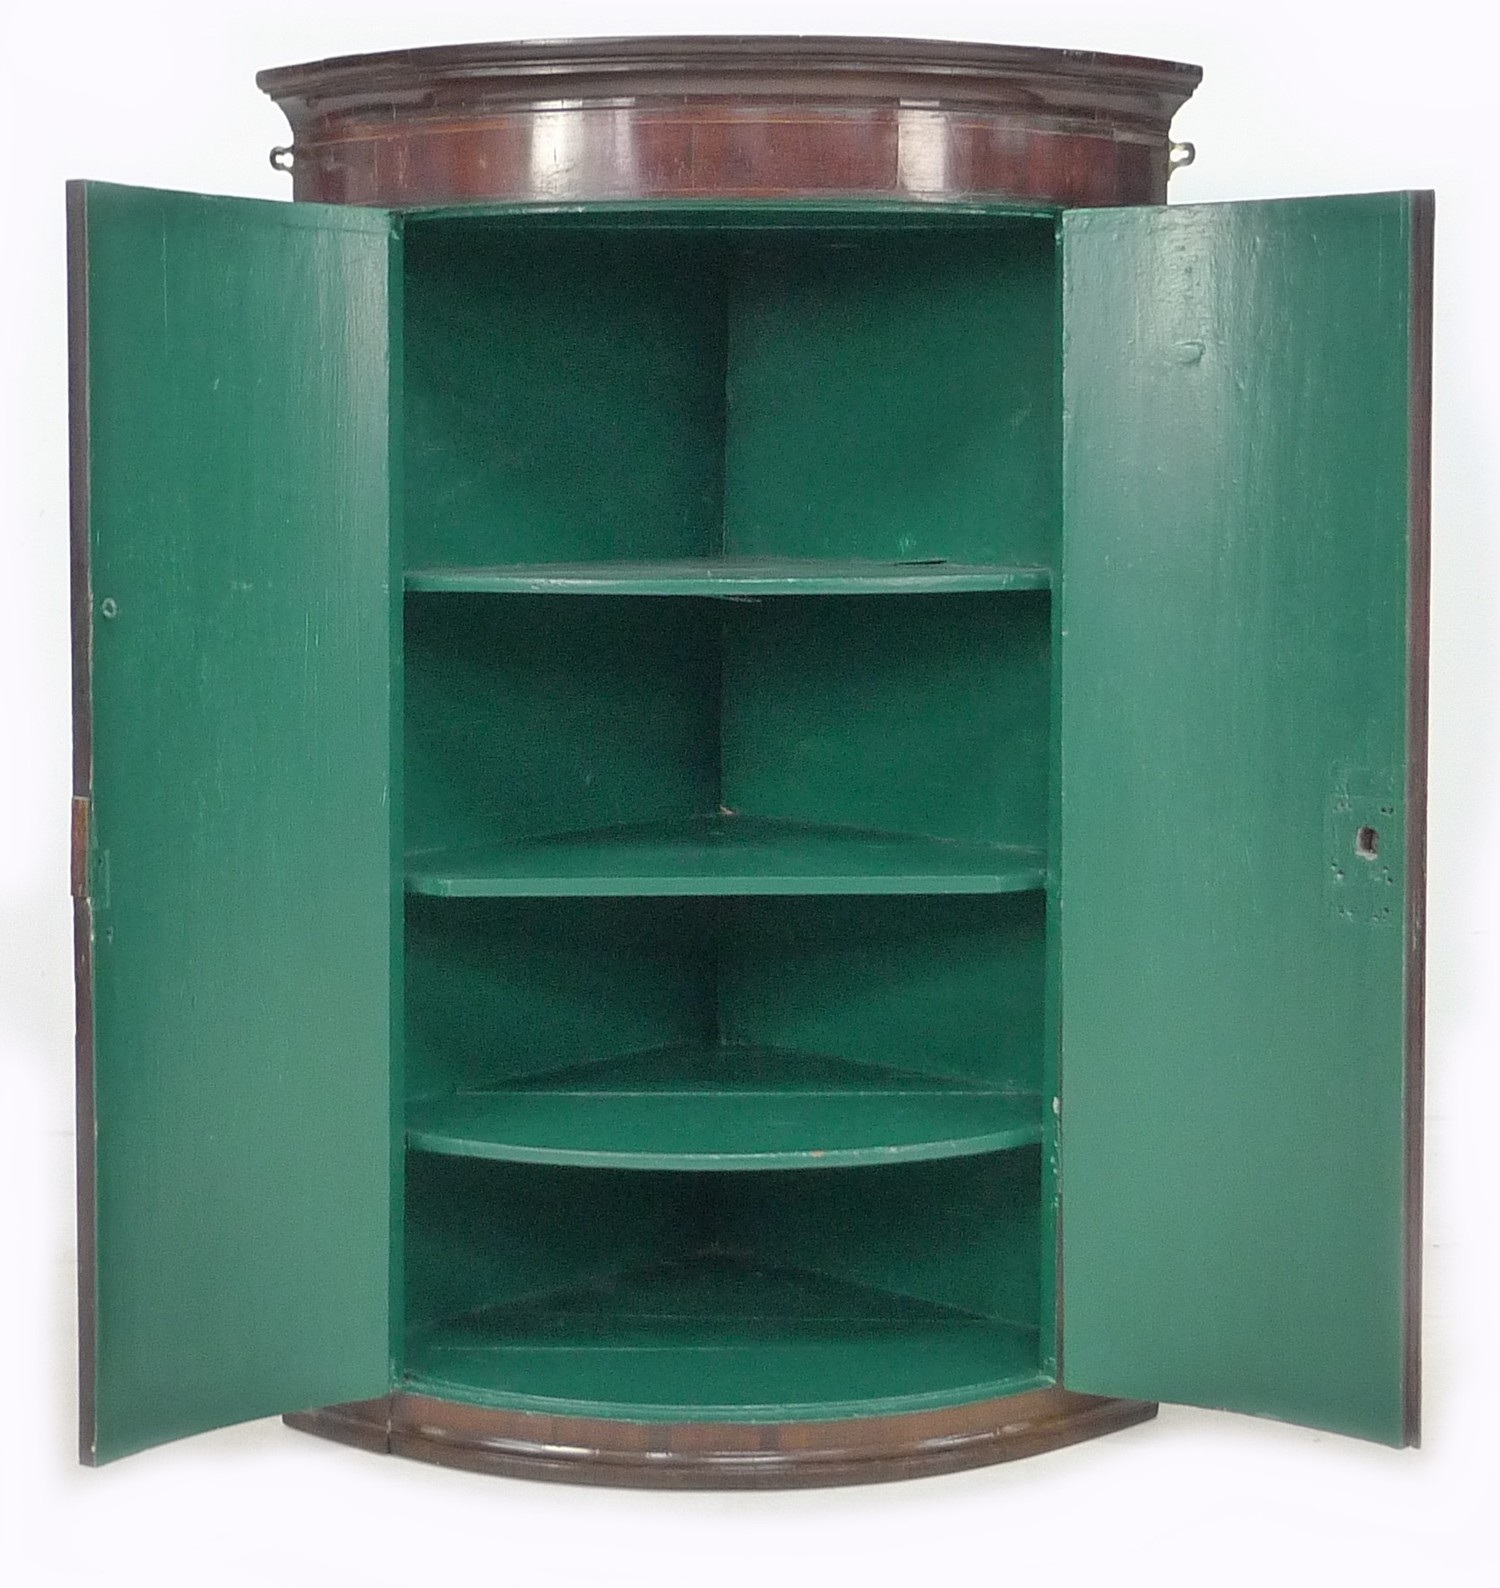 A George III mahogany bow fronted corner cupboard, with green painted interior, 72 by 50 by 106cm - Image 2 of 4